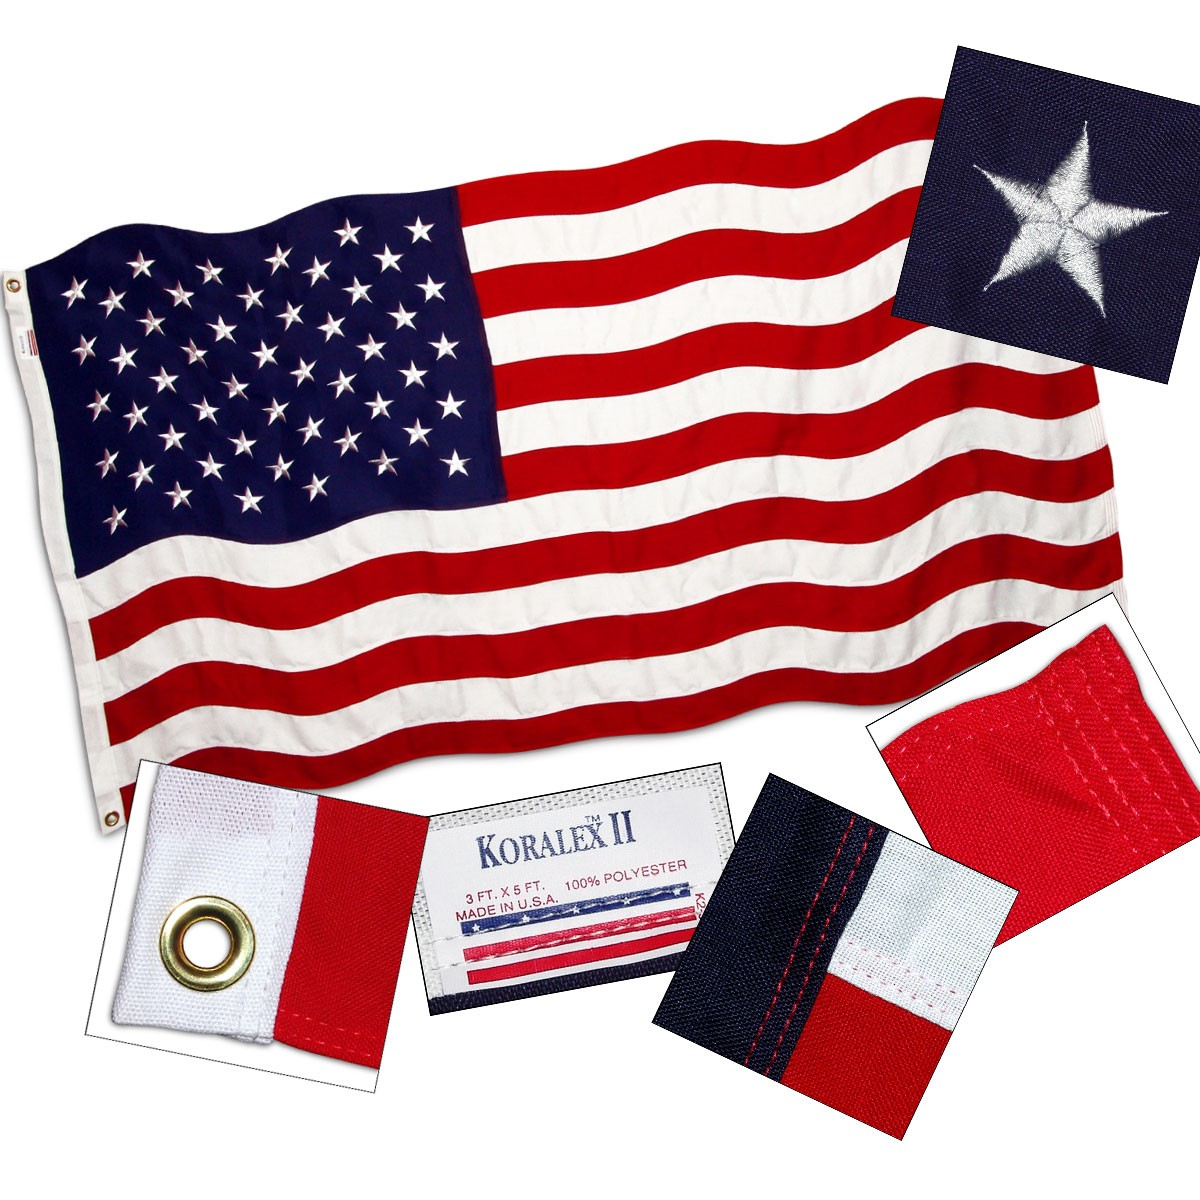 cb7c13d342d1 Flag Blog – Page 15 – The official Flag Blog of the United States ...